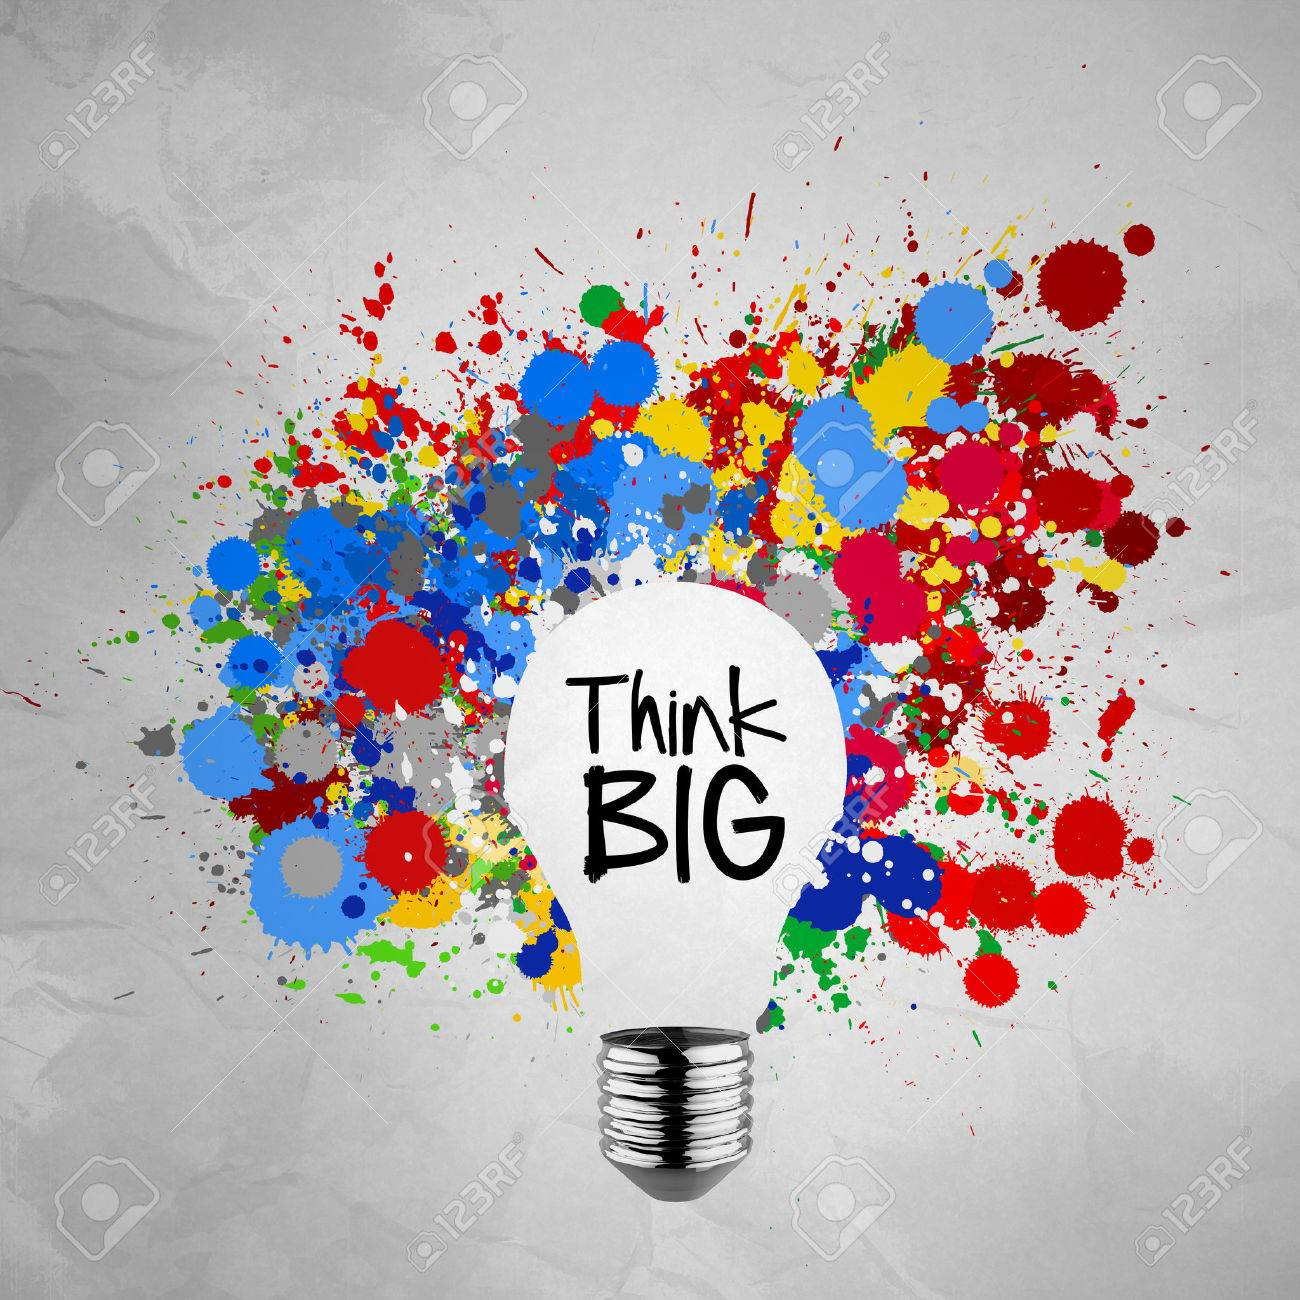 philosophy stock photos pictures royalty philosophy images philosophy think big word colorful splash colors lightbulb crumpled paper background as concept stock